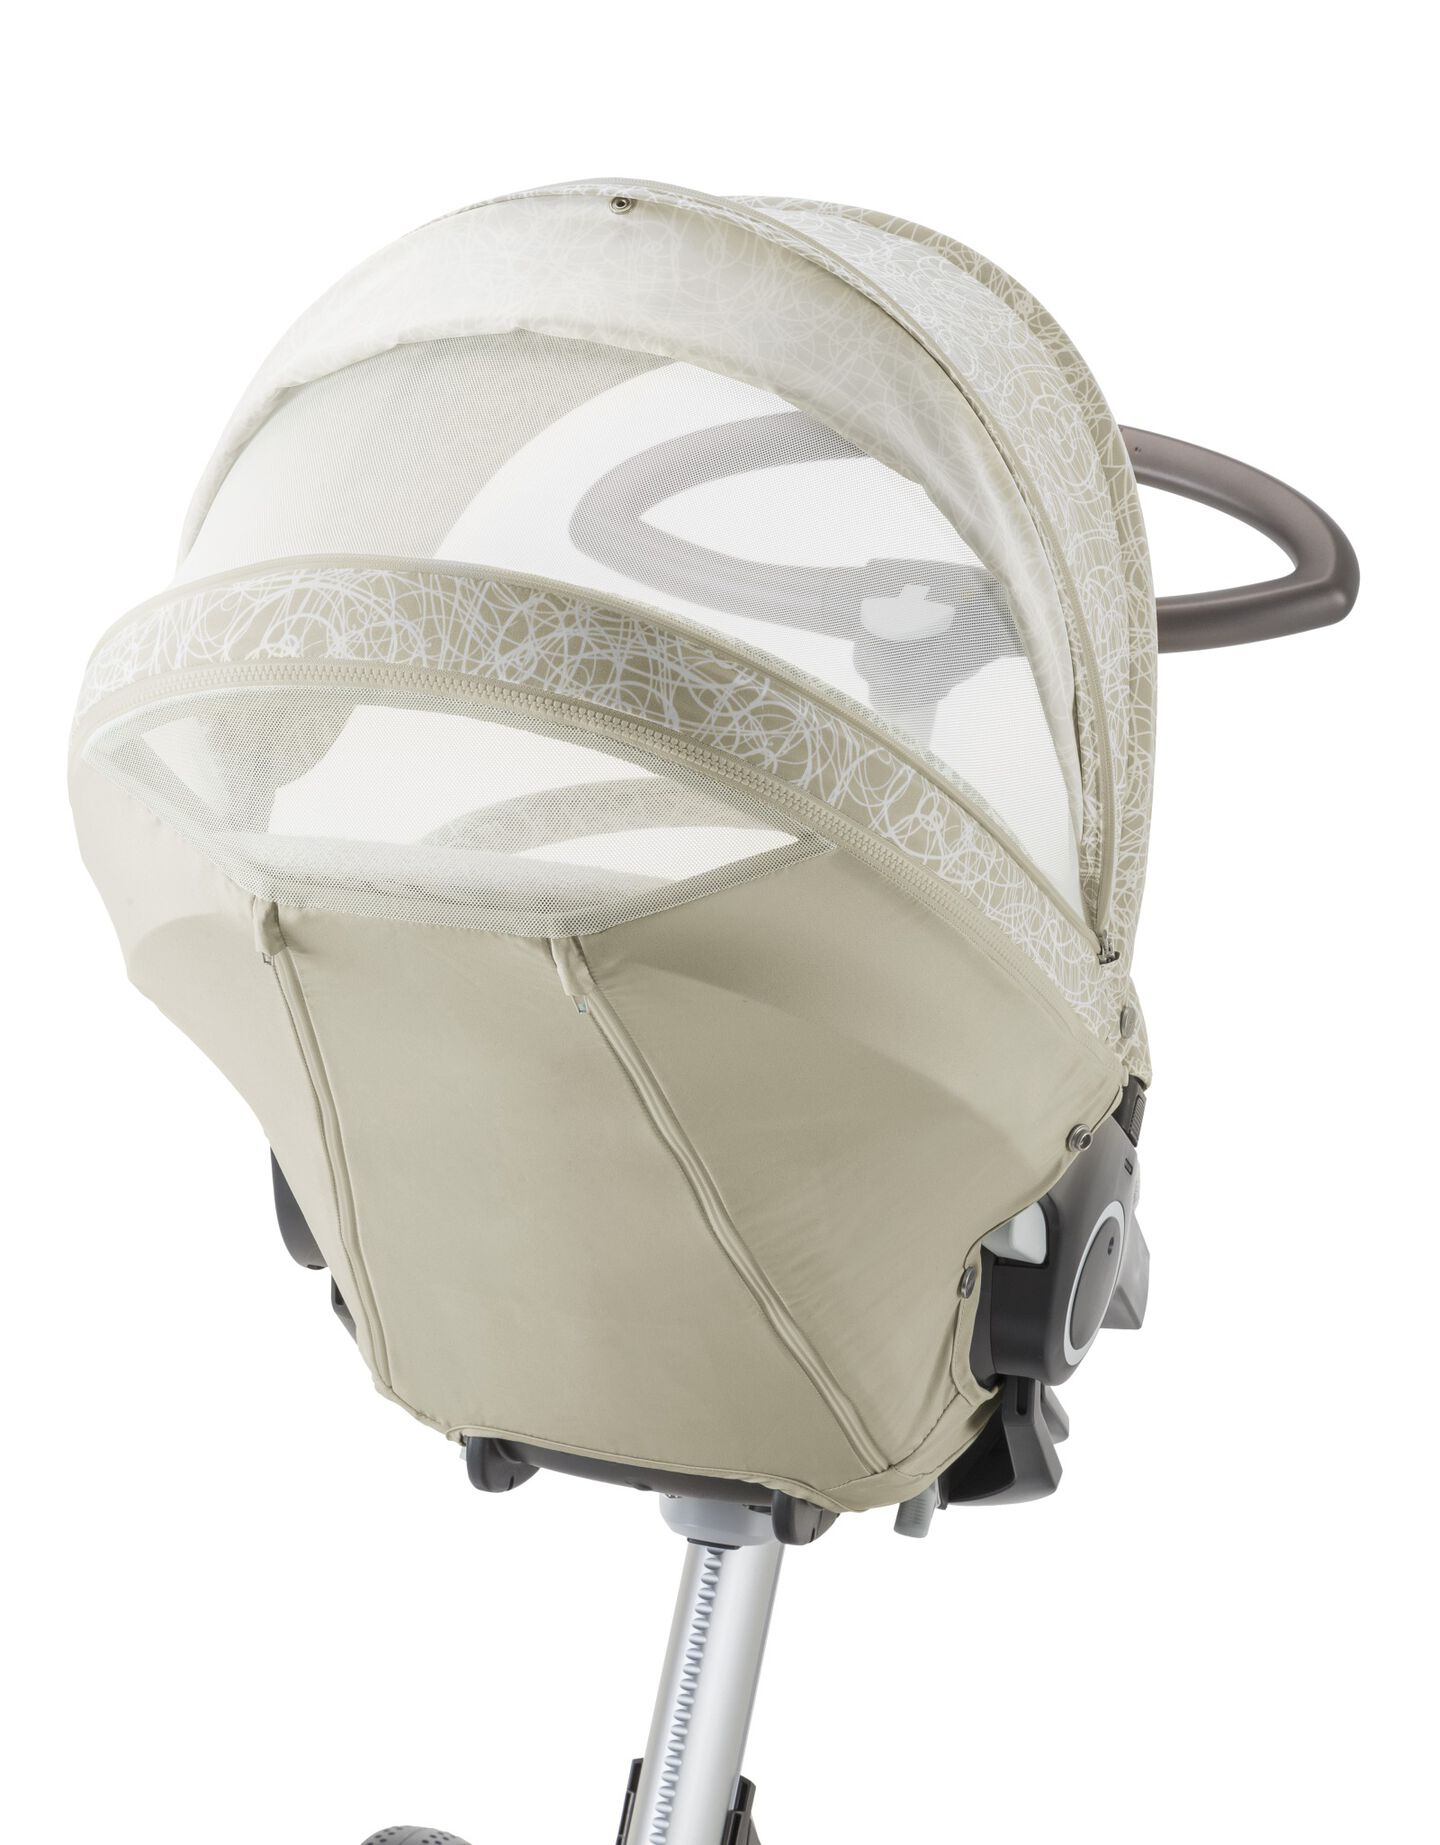 Stokke® Xplory® with Stokke® Stroller Summer Kit Scribble Sandy Beige.